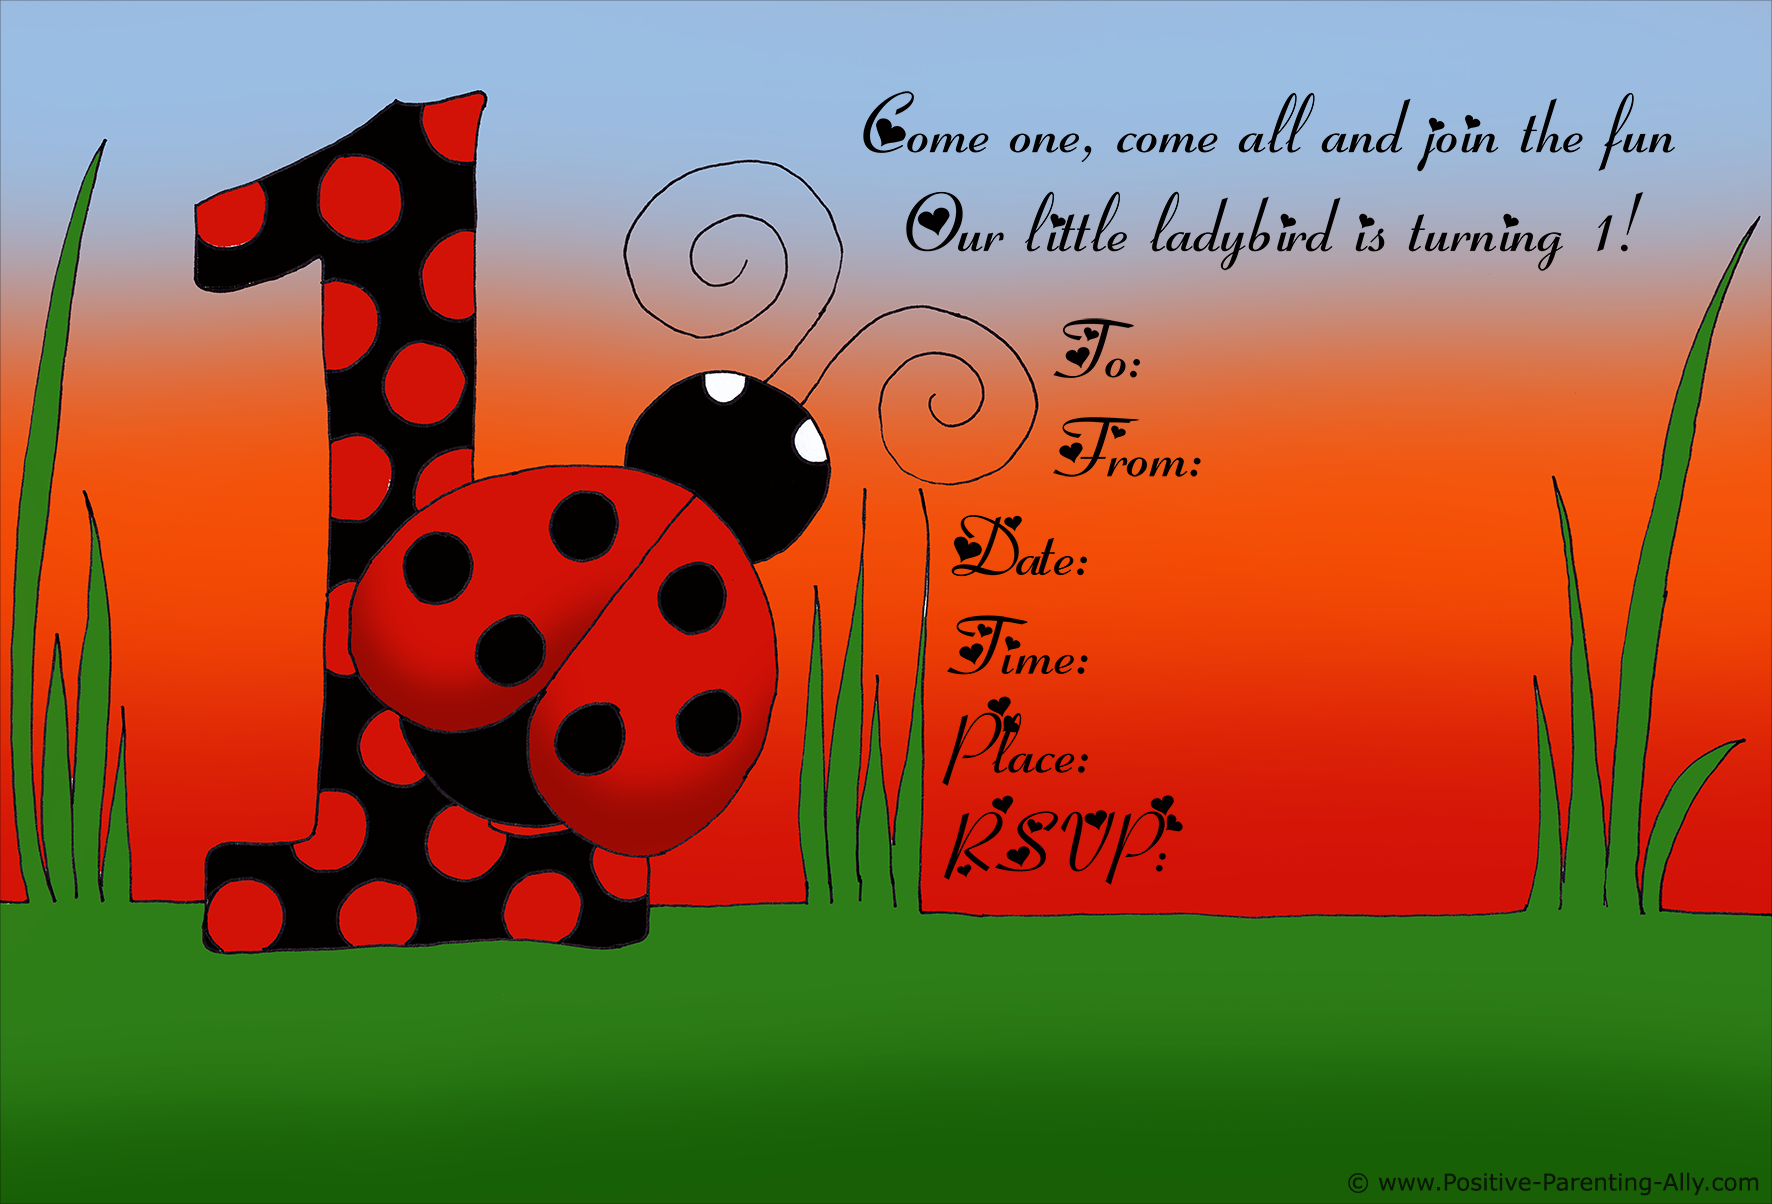 Sweet ladybird or ladybug birthday invitation to print.